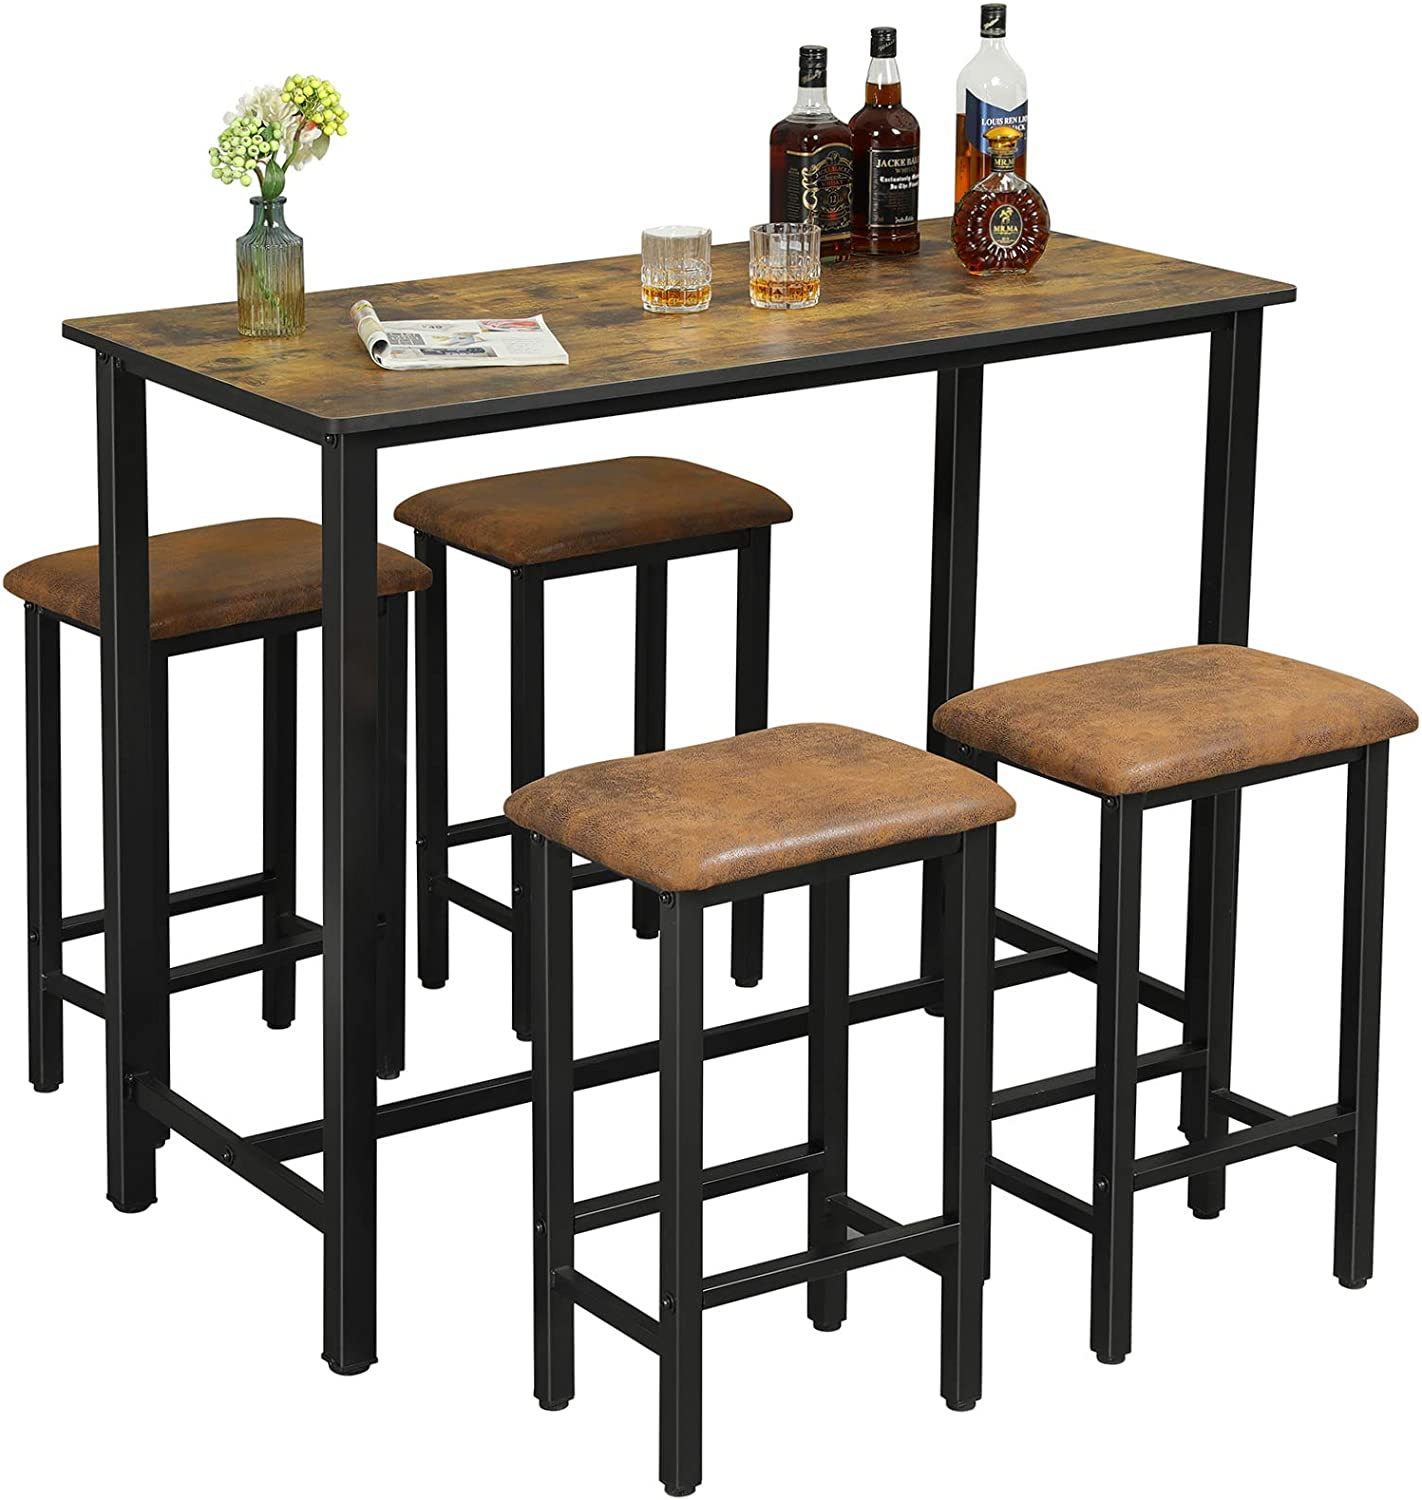 DICTAC Bar Table Set, Bar Table with 9 Bar Stools, Dining Room Table Set,  Counter high Kitchen 9 Piece Bistro/Pub Table Set, Industrial Table and ...